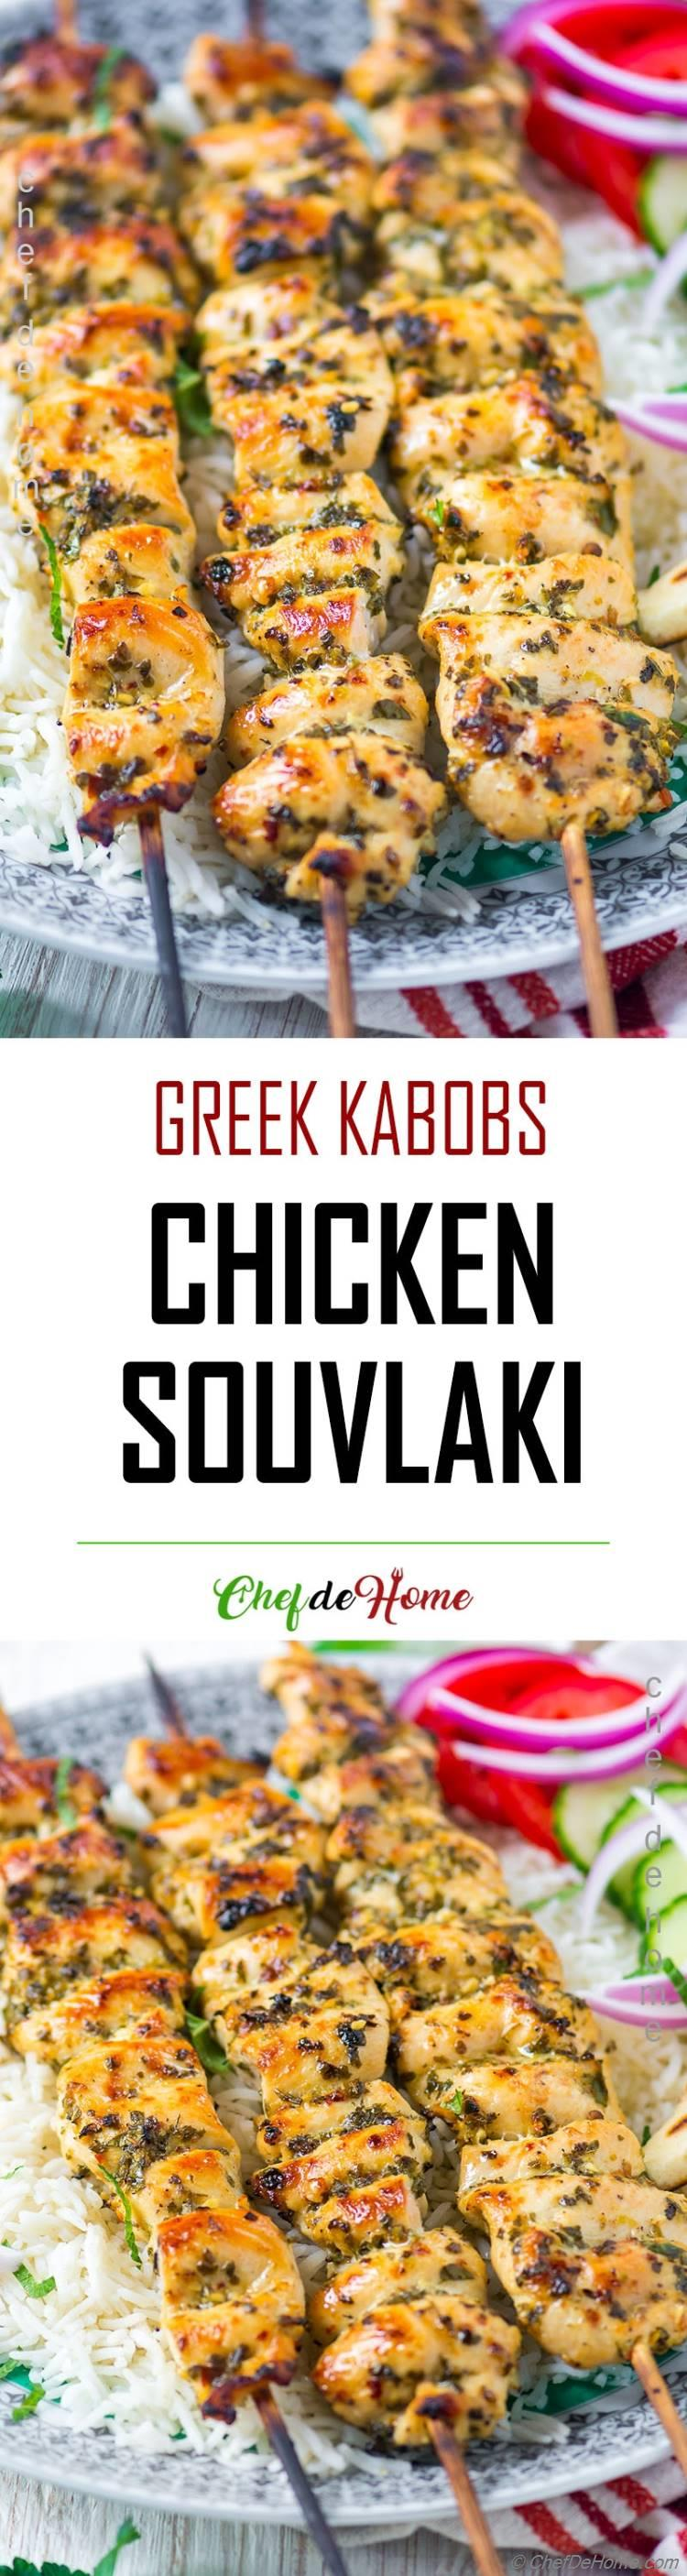 Chicken Souvlaki Kabobs recipe with rice and pita